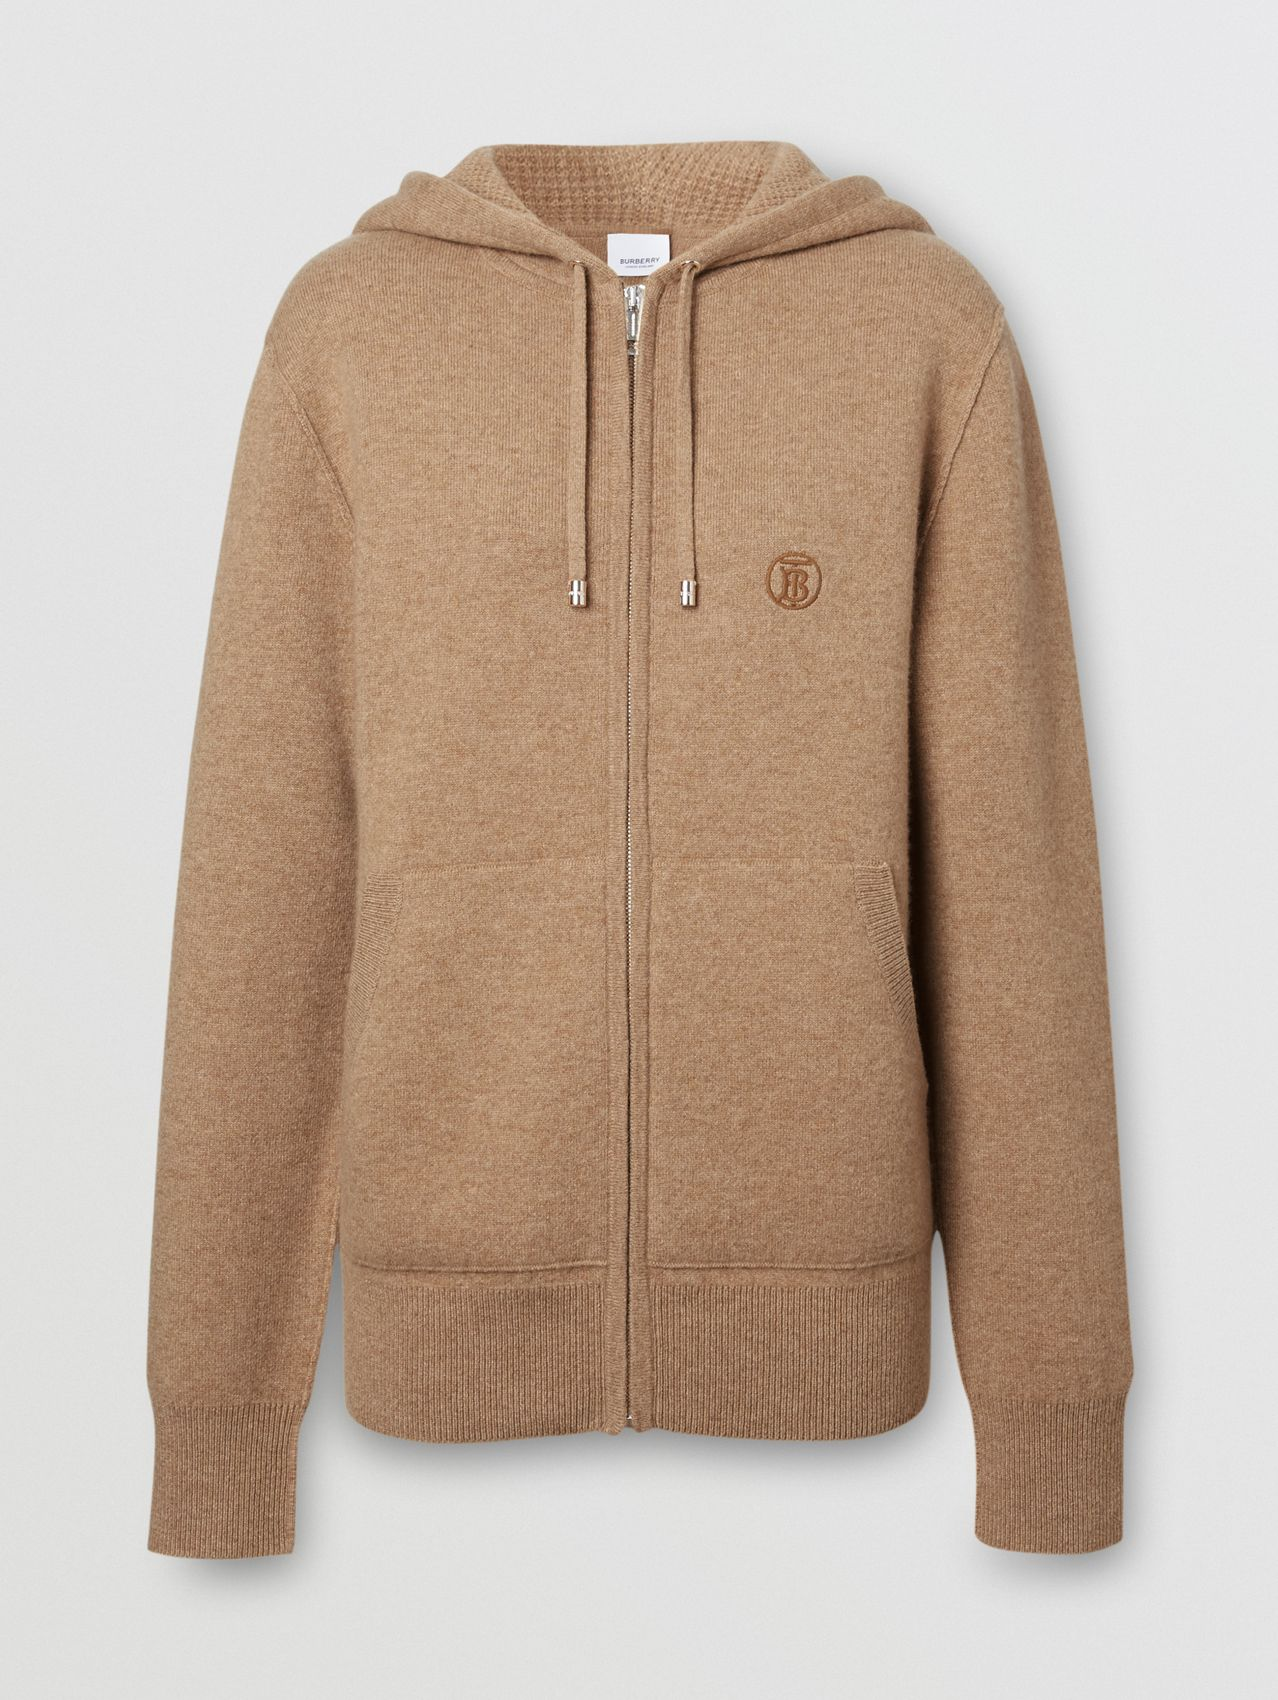 Monogram Motif Cashmere Blend Hooded Top (Pale Coffee)